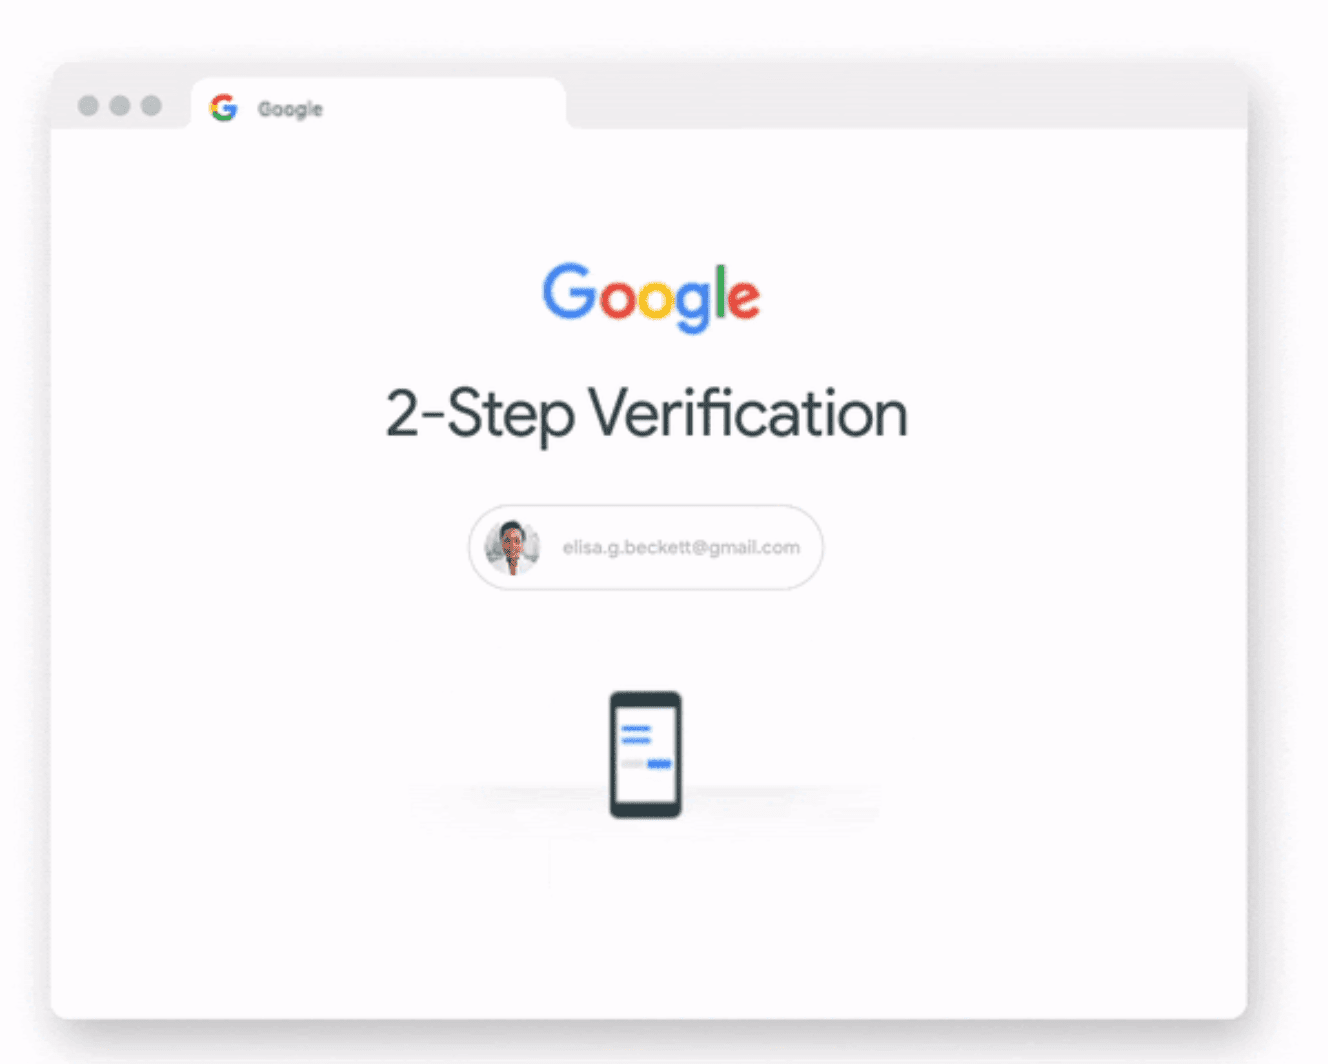 2SV when signing into a Google account